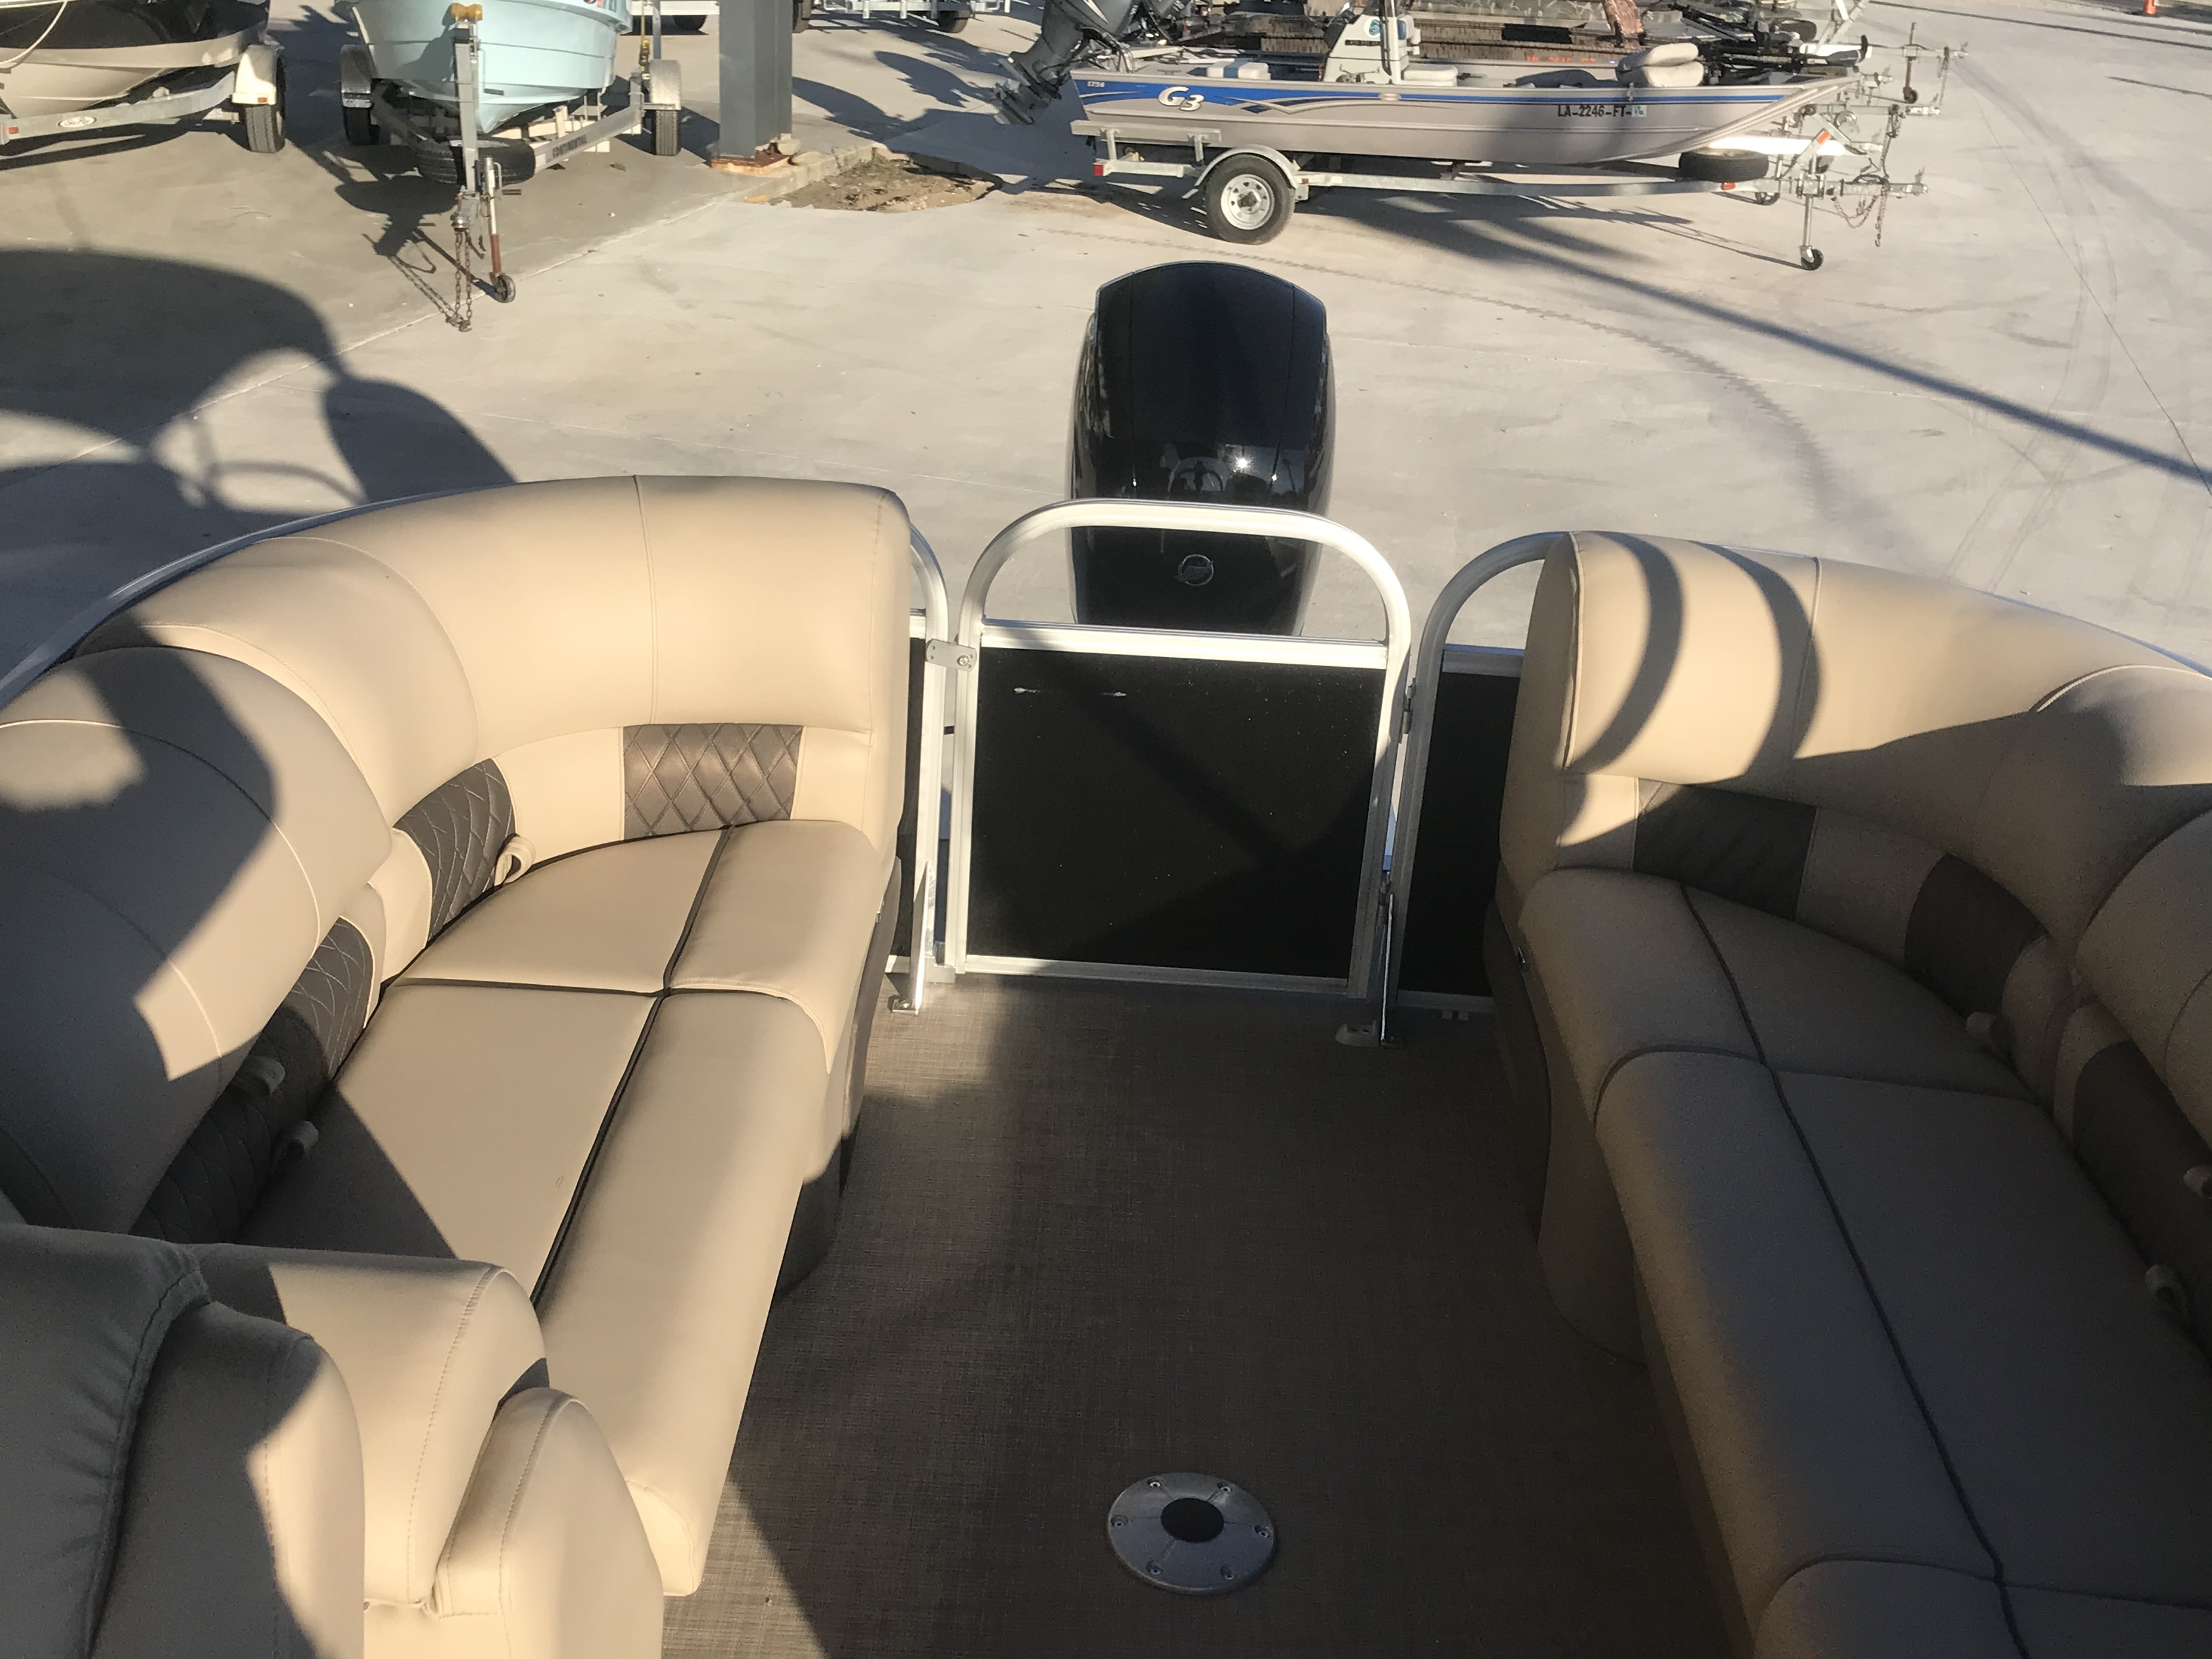 2022 Sun Tracker boat for sale, model of the boat is 22 Party Barge DLX & Image # 12 of 15